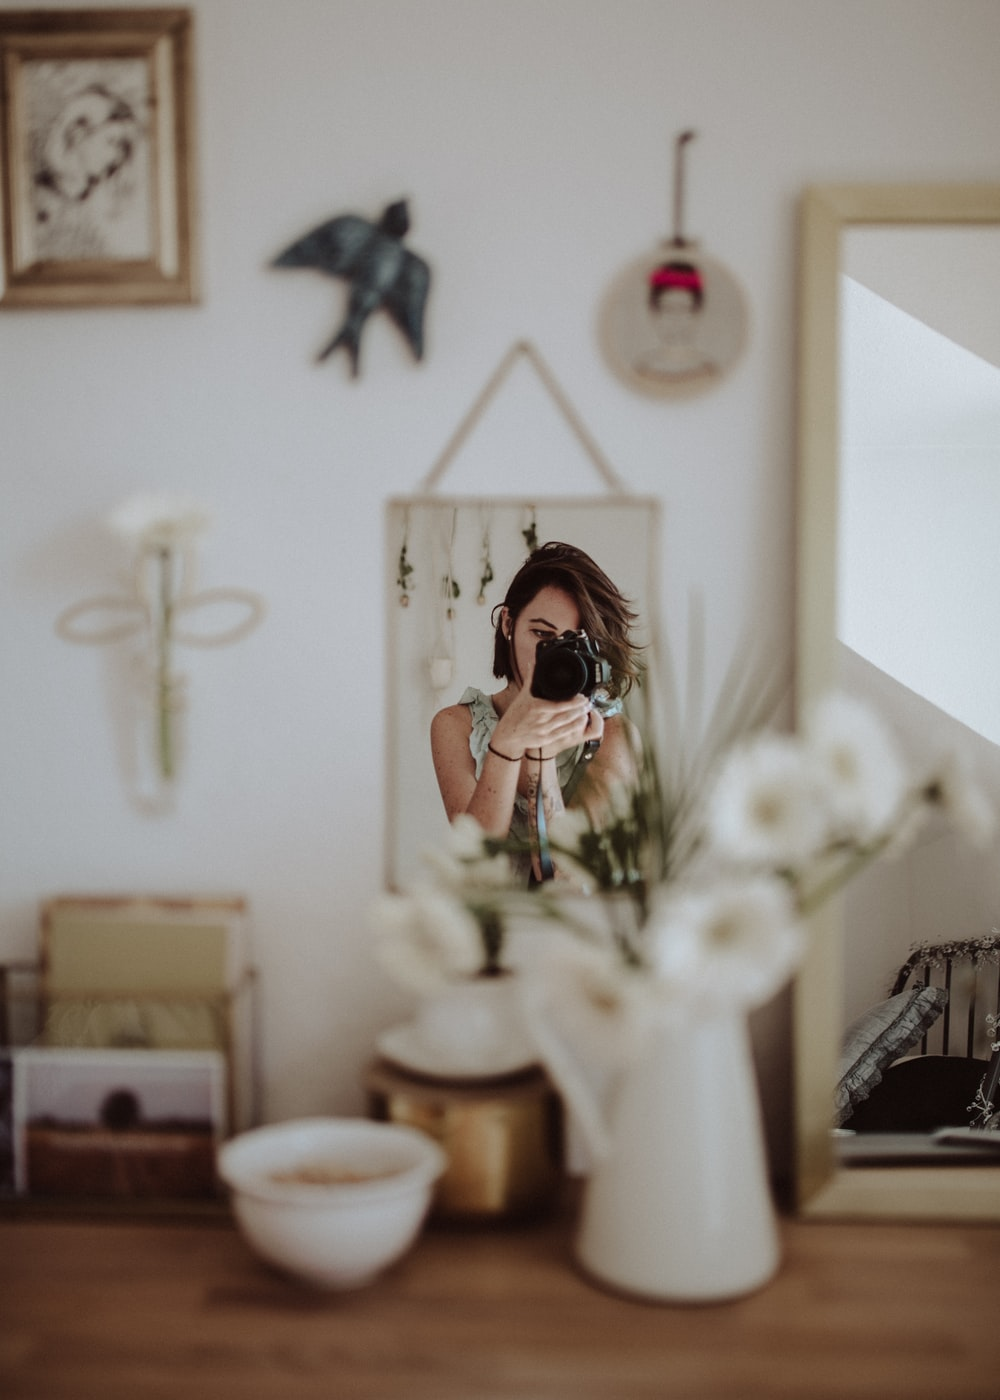 woman holding DSLR camera taking photo in front mirror inside room